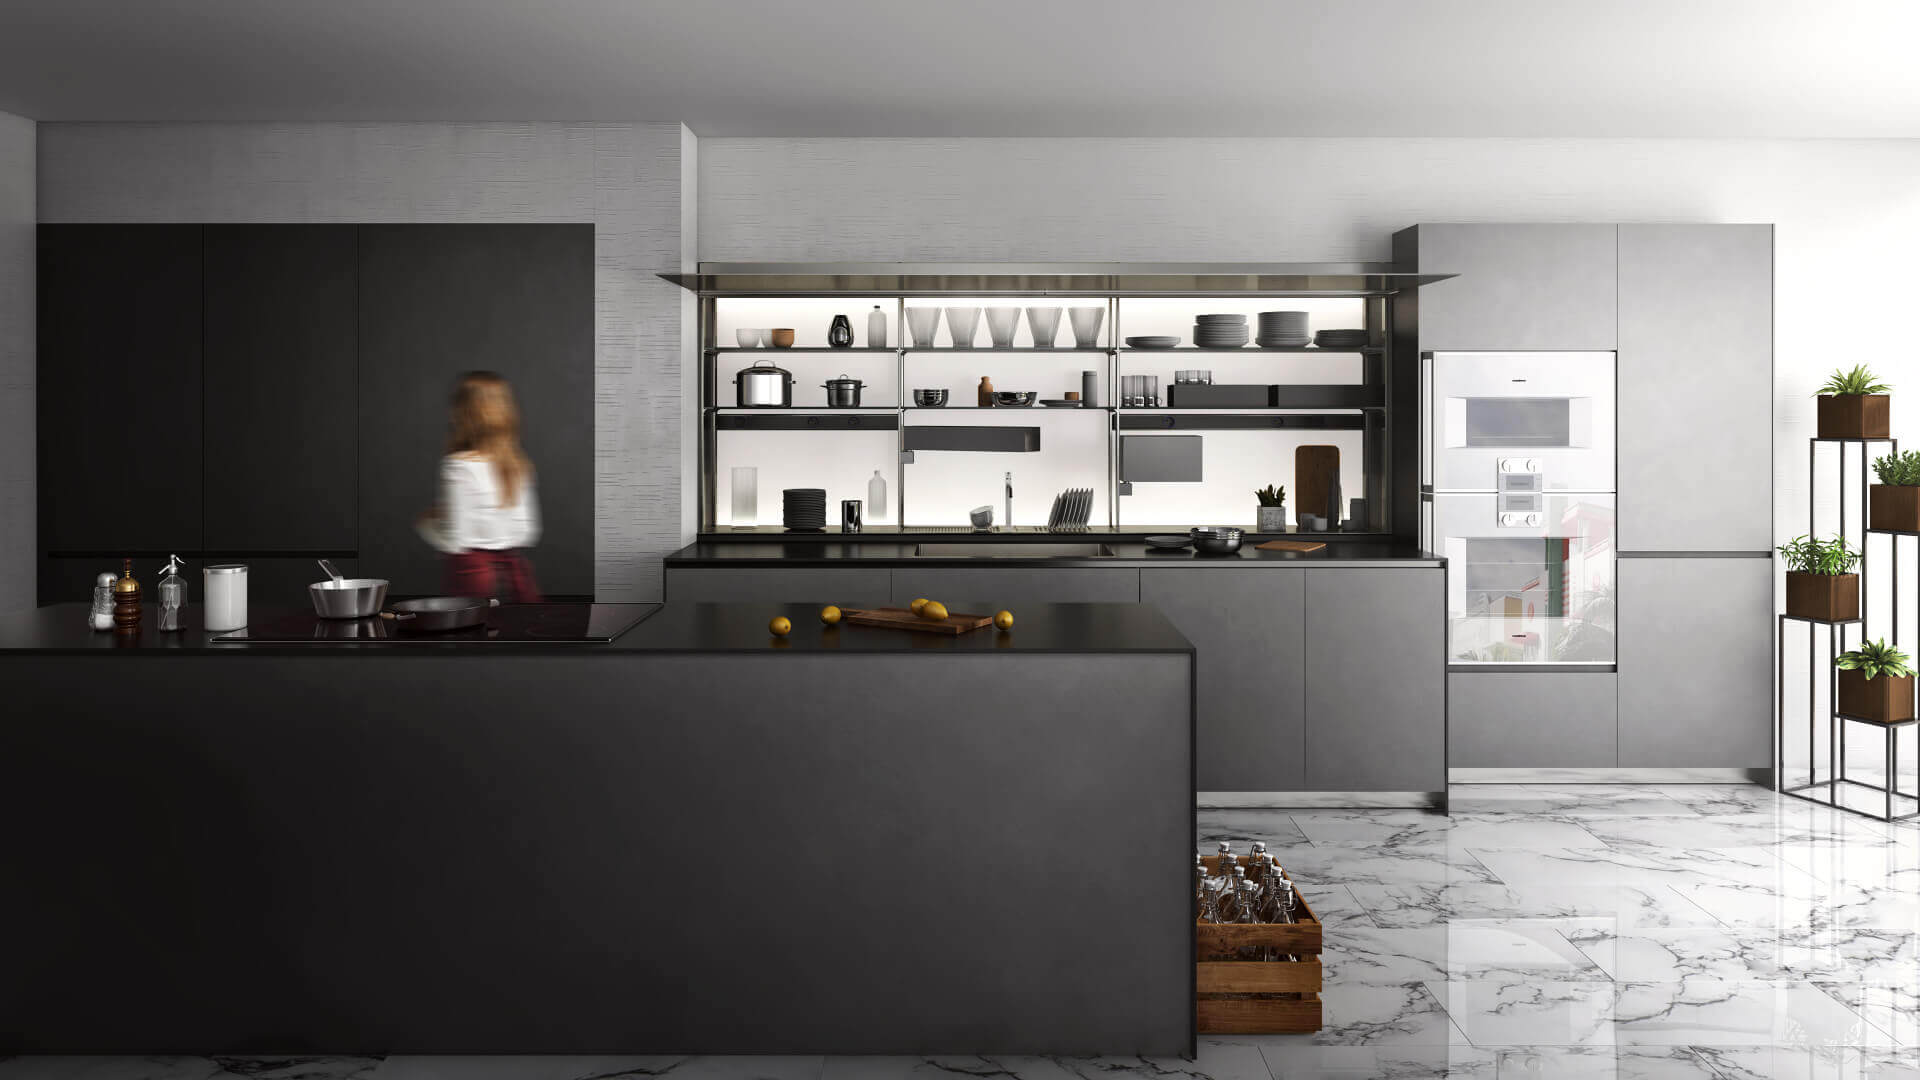 3D Product Rendering for a Black Kitchen